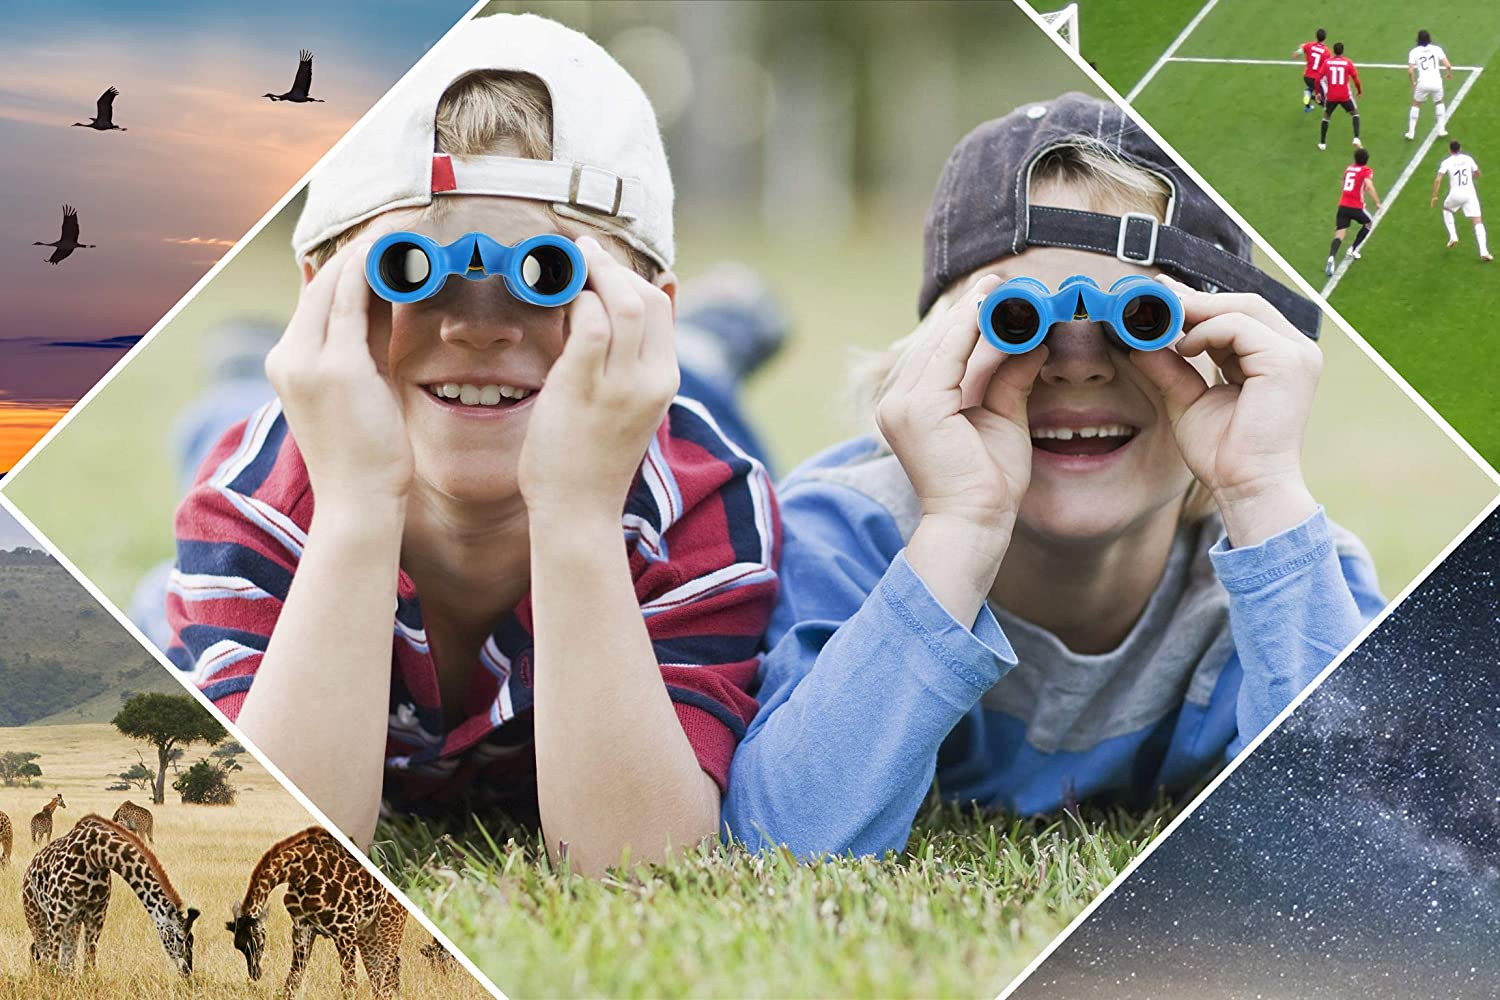 Outdoor Gifts//Toys for Boys /& Girls Hiking Sirkaya Kids Binoculars High Resolution 8x21 with 3in1 Educational Kit /& Upgraded Breakaway Strap Scout Exploring Top in Bird Watching Camping Hunting